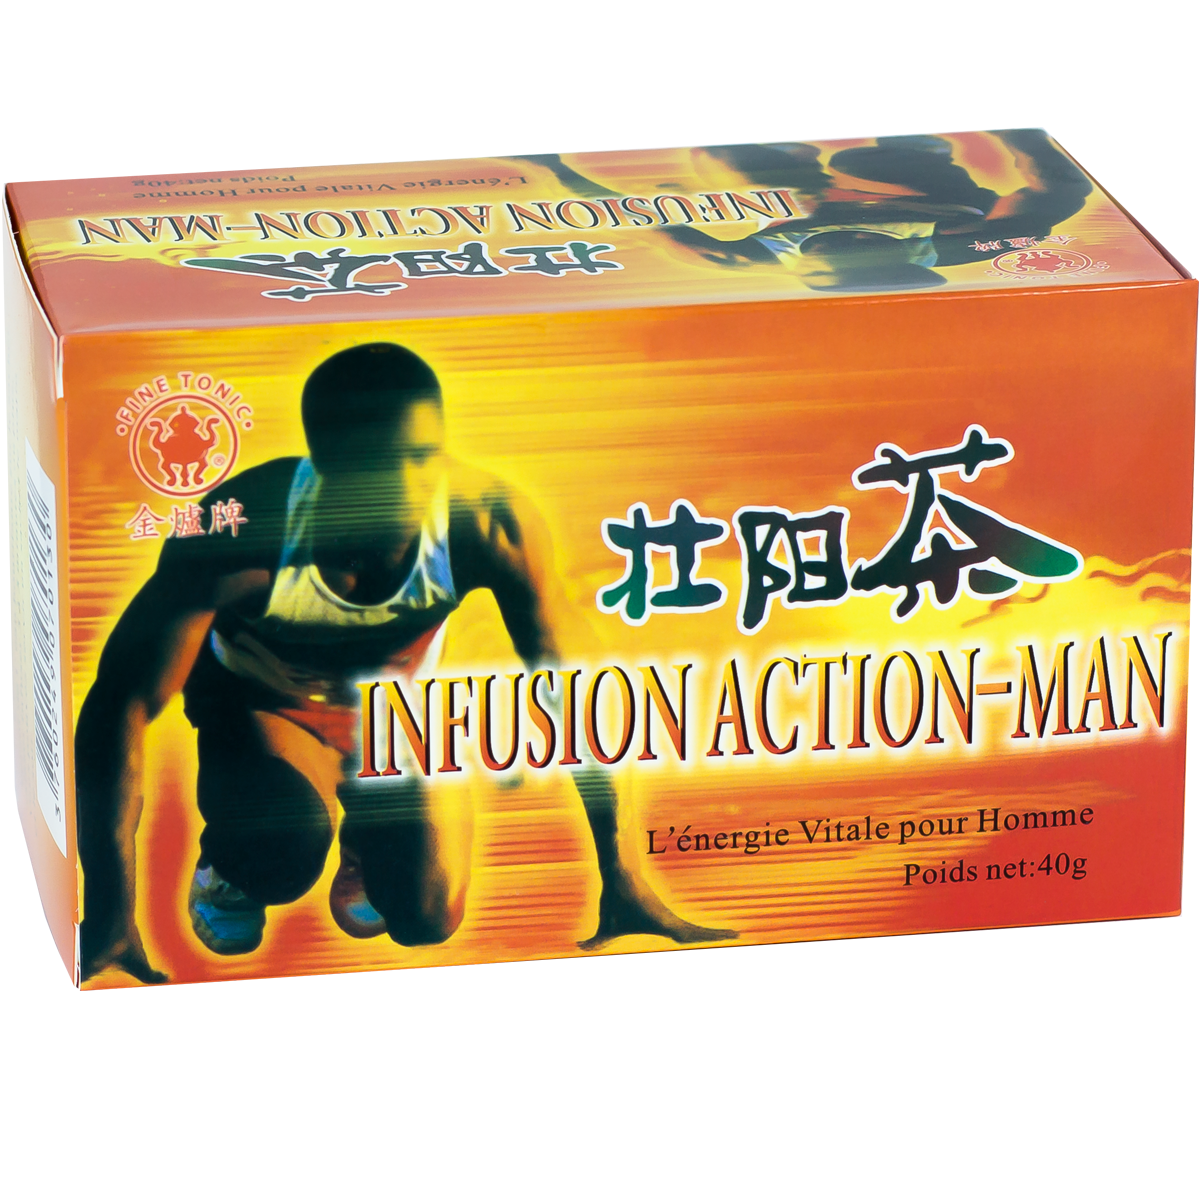 Infusion Action-Man Image